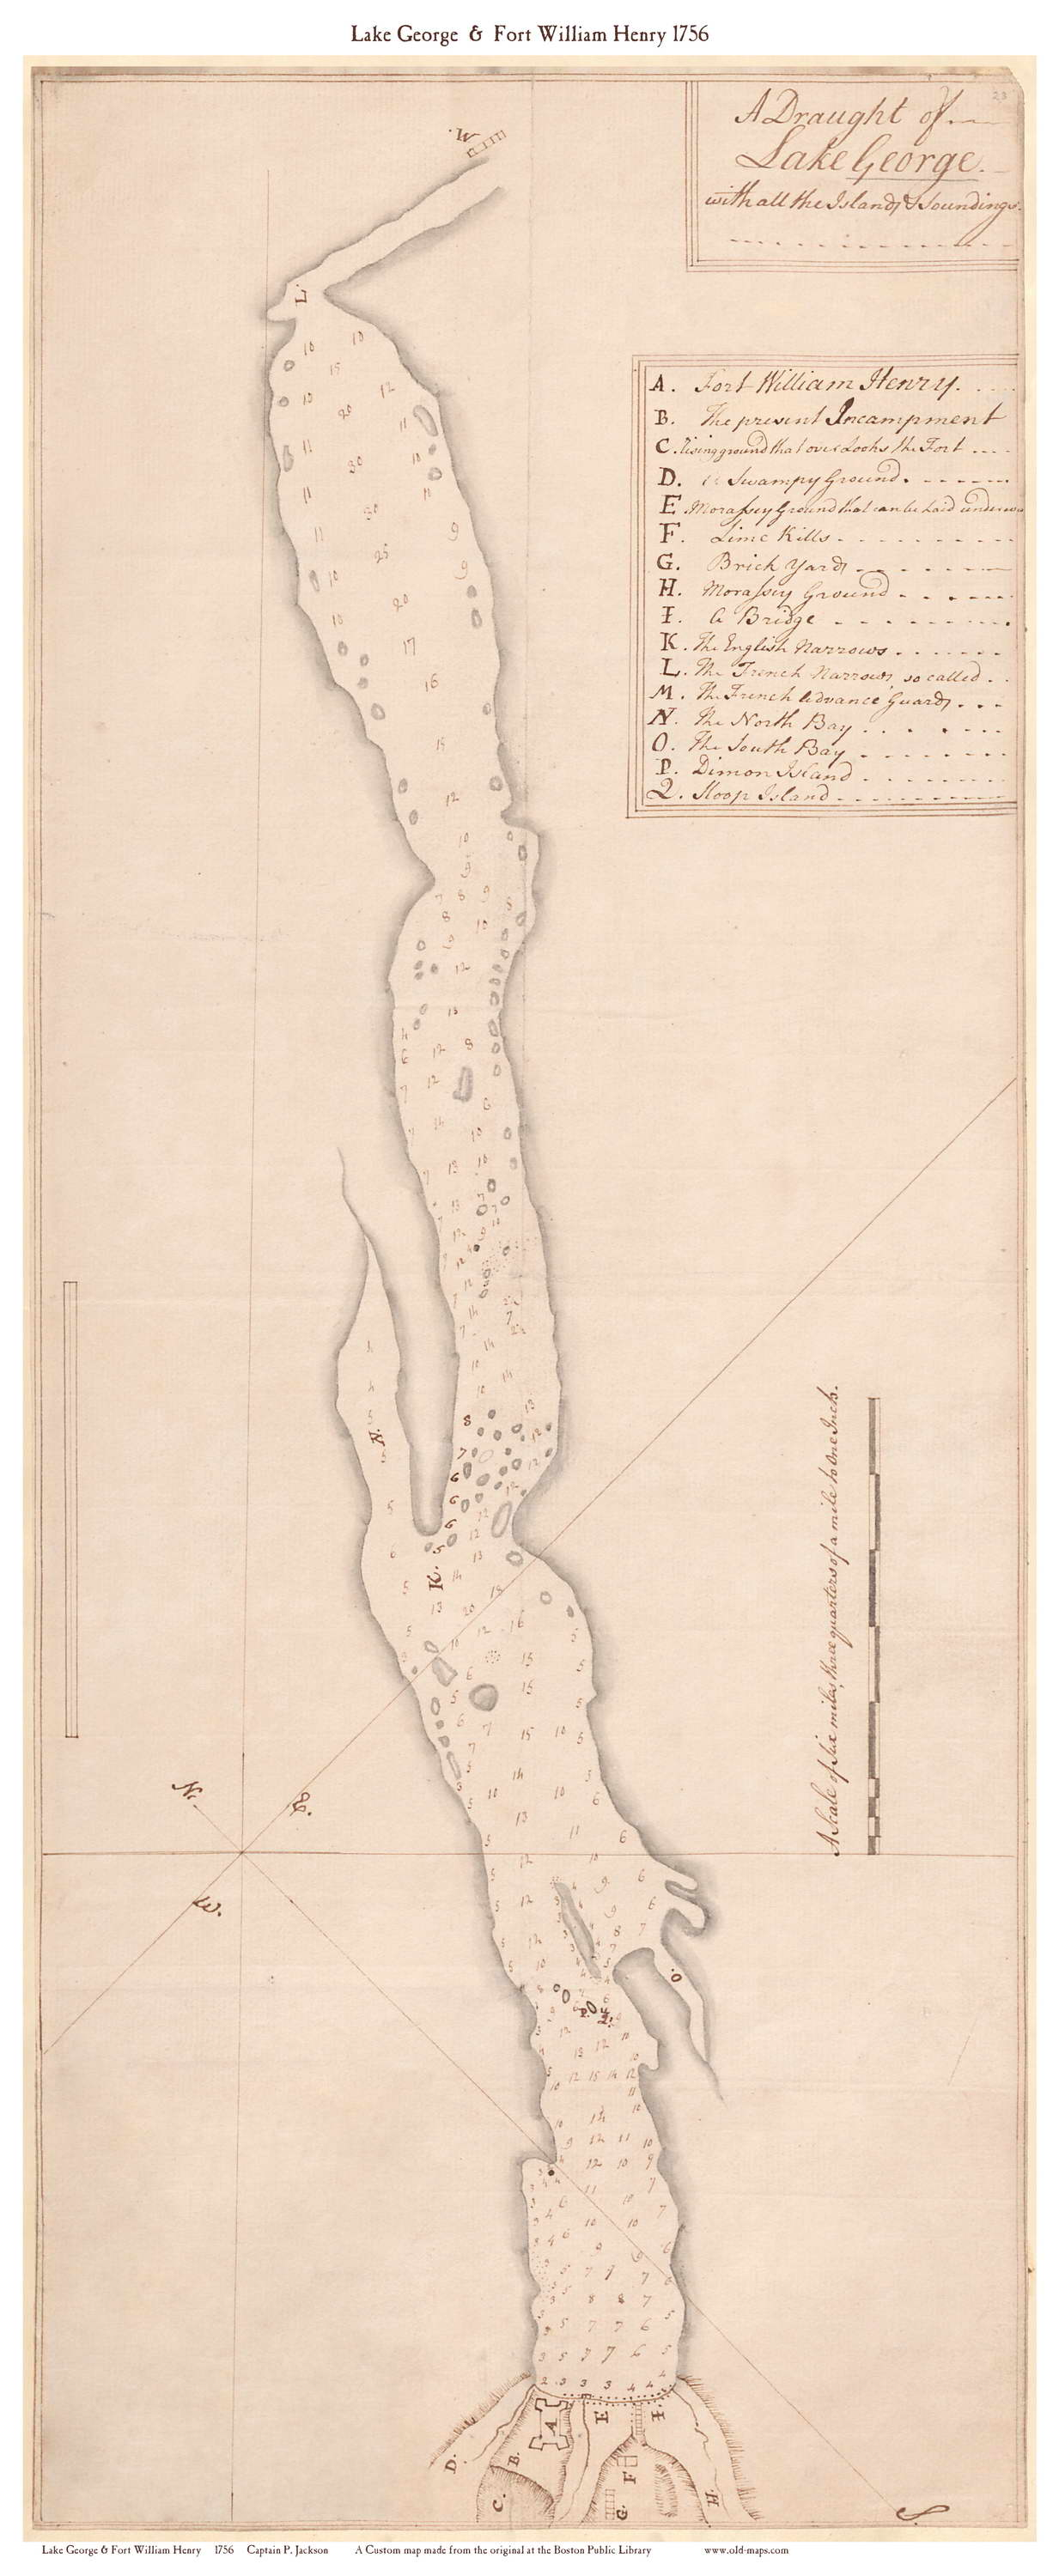 Lake George New York Map.Newly Added Map Of Lake George In New York From 1756 Old Maps Blog